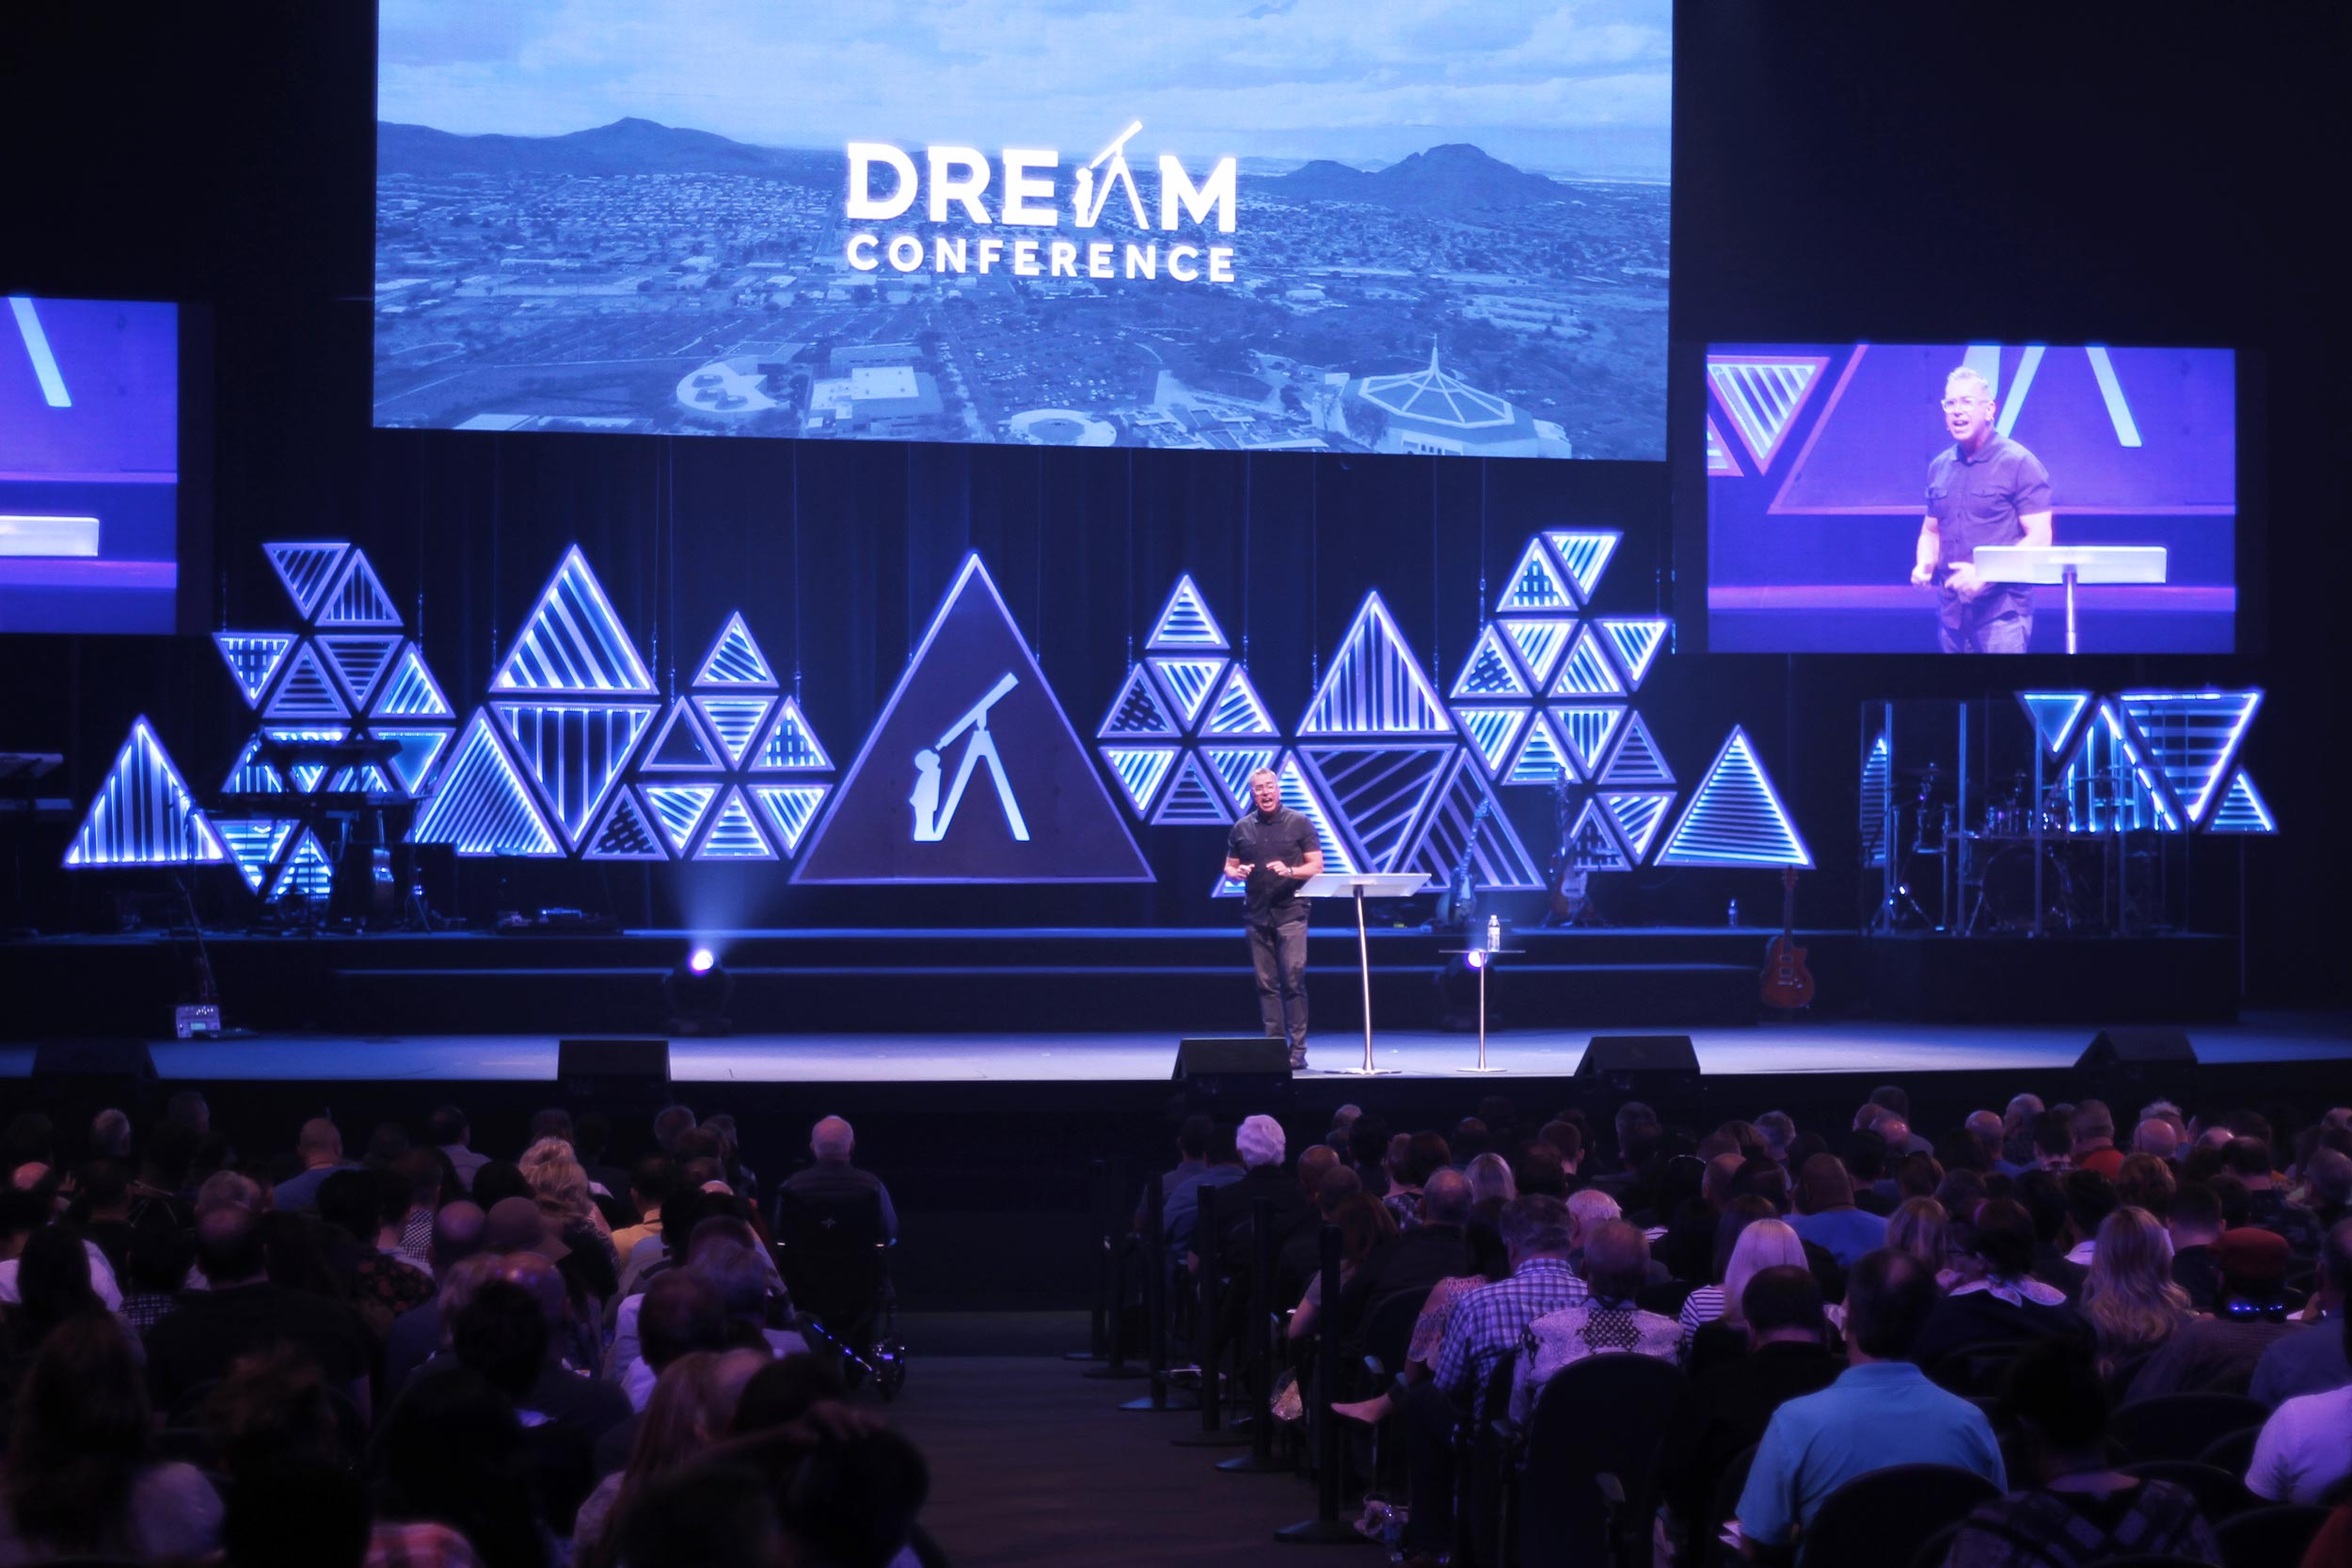 Dream Conference stage design